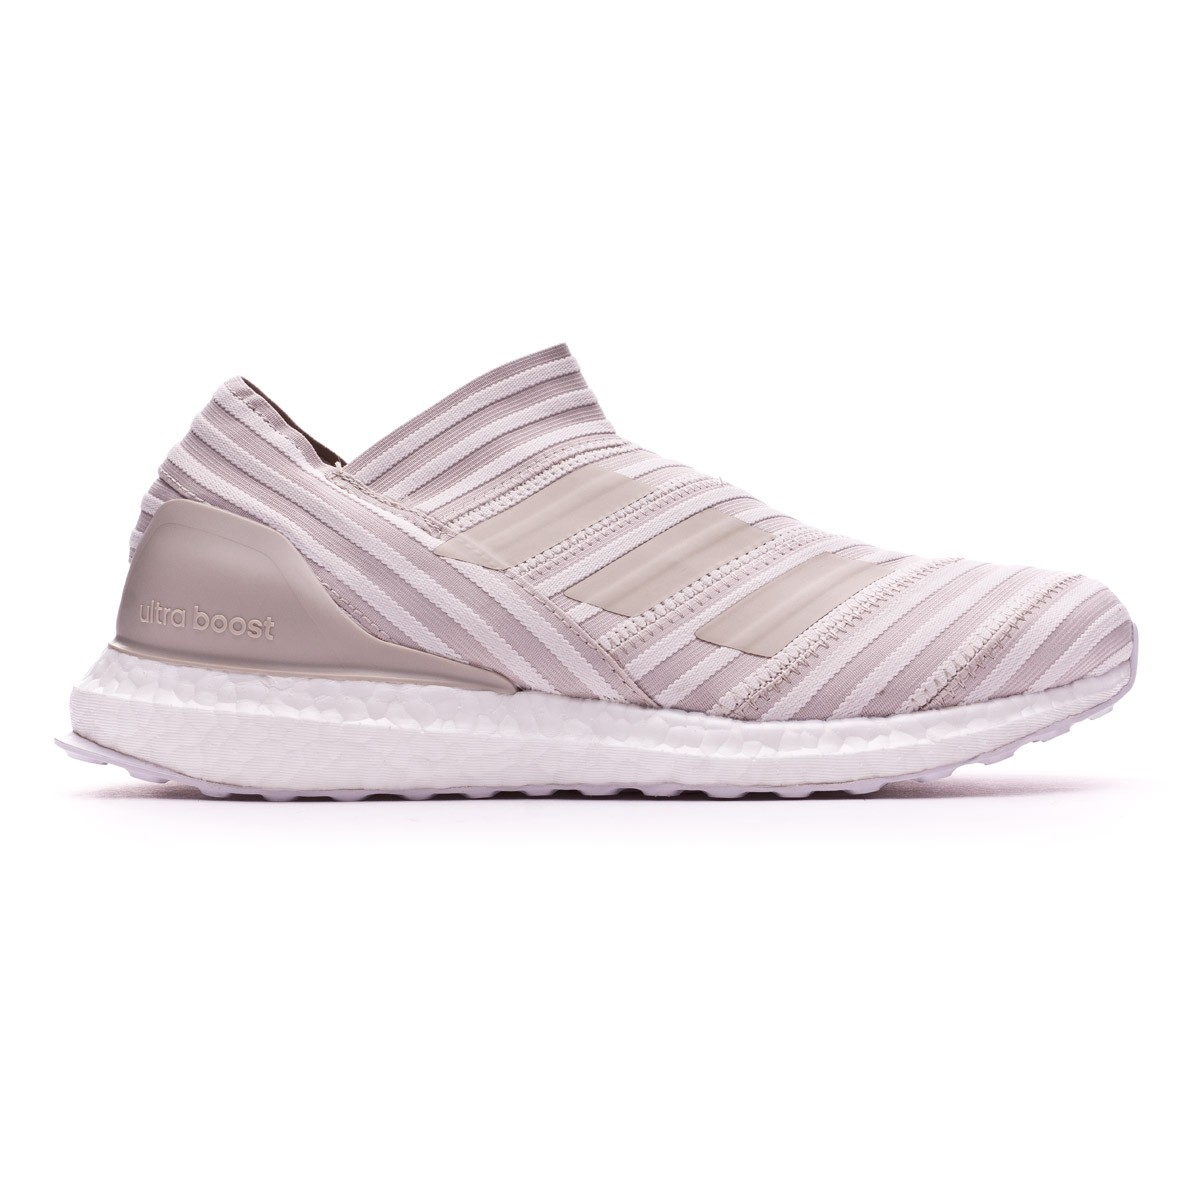 e58085651348 Trainers adidas Nemeziz Tango 17+ 360 Agility TR UltraBoost Clear  brown-Sesame-Chalk white - Football store Fútbol Emotion